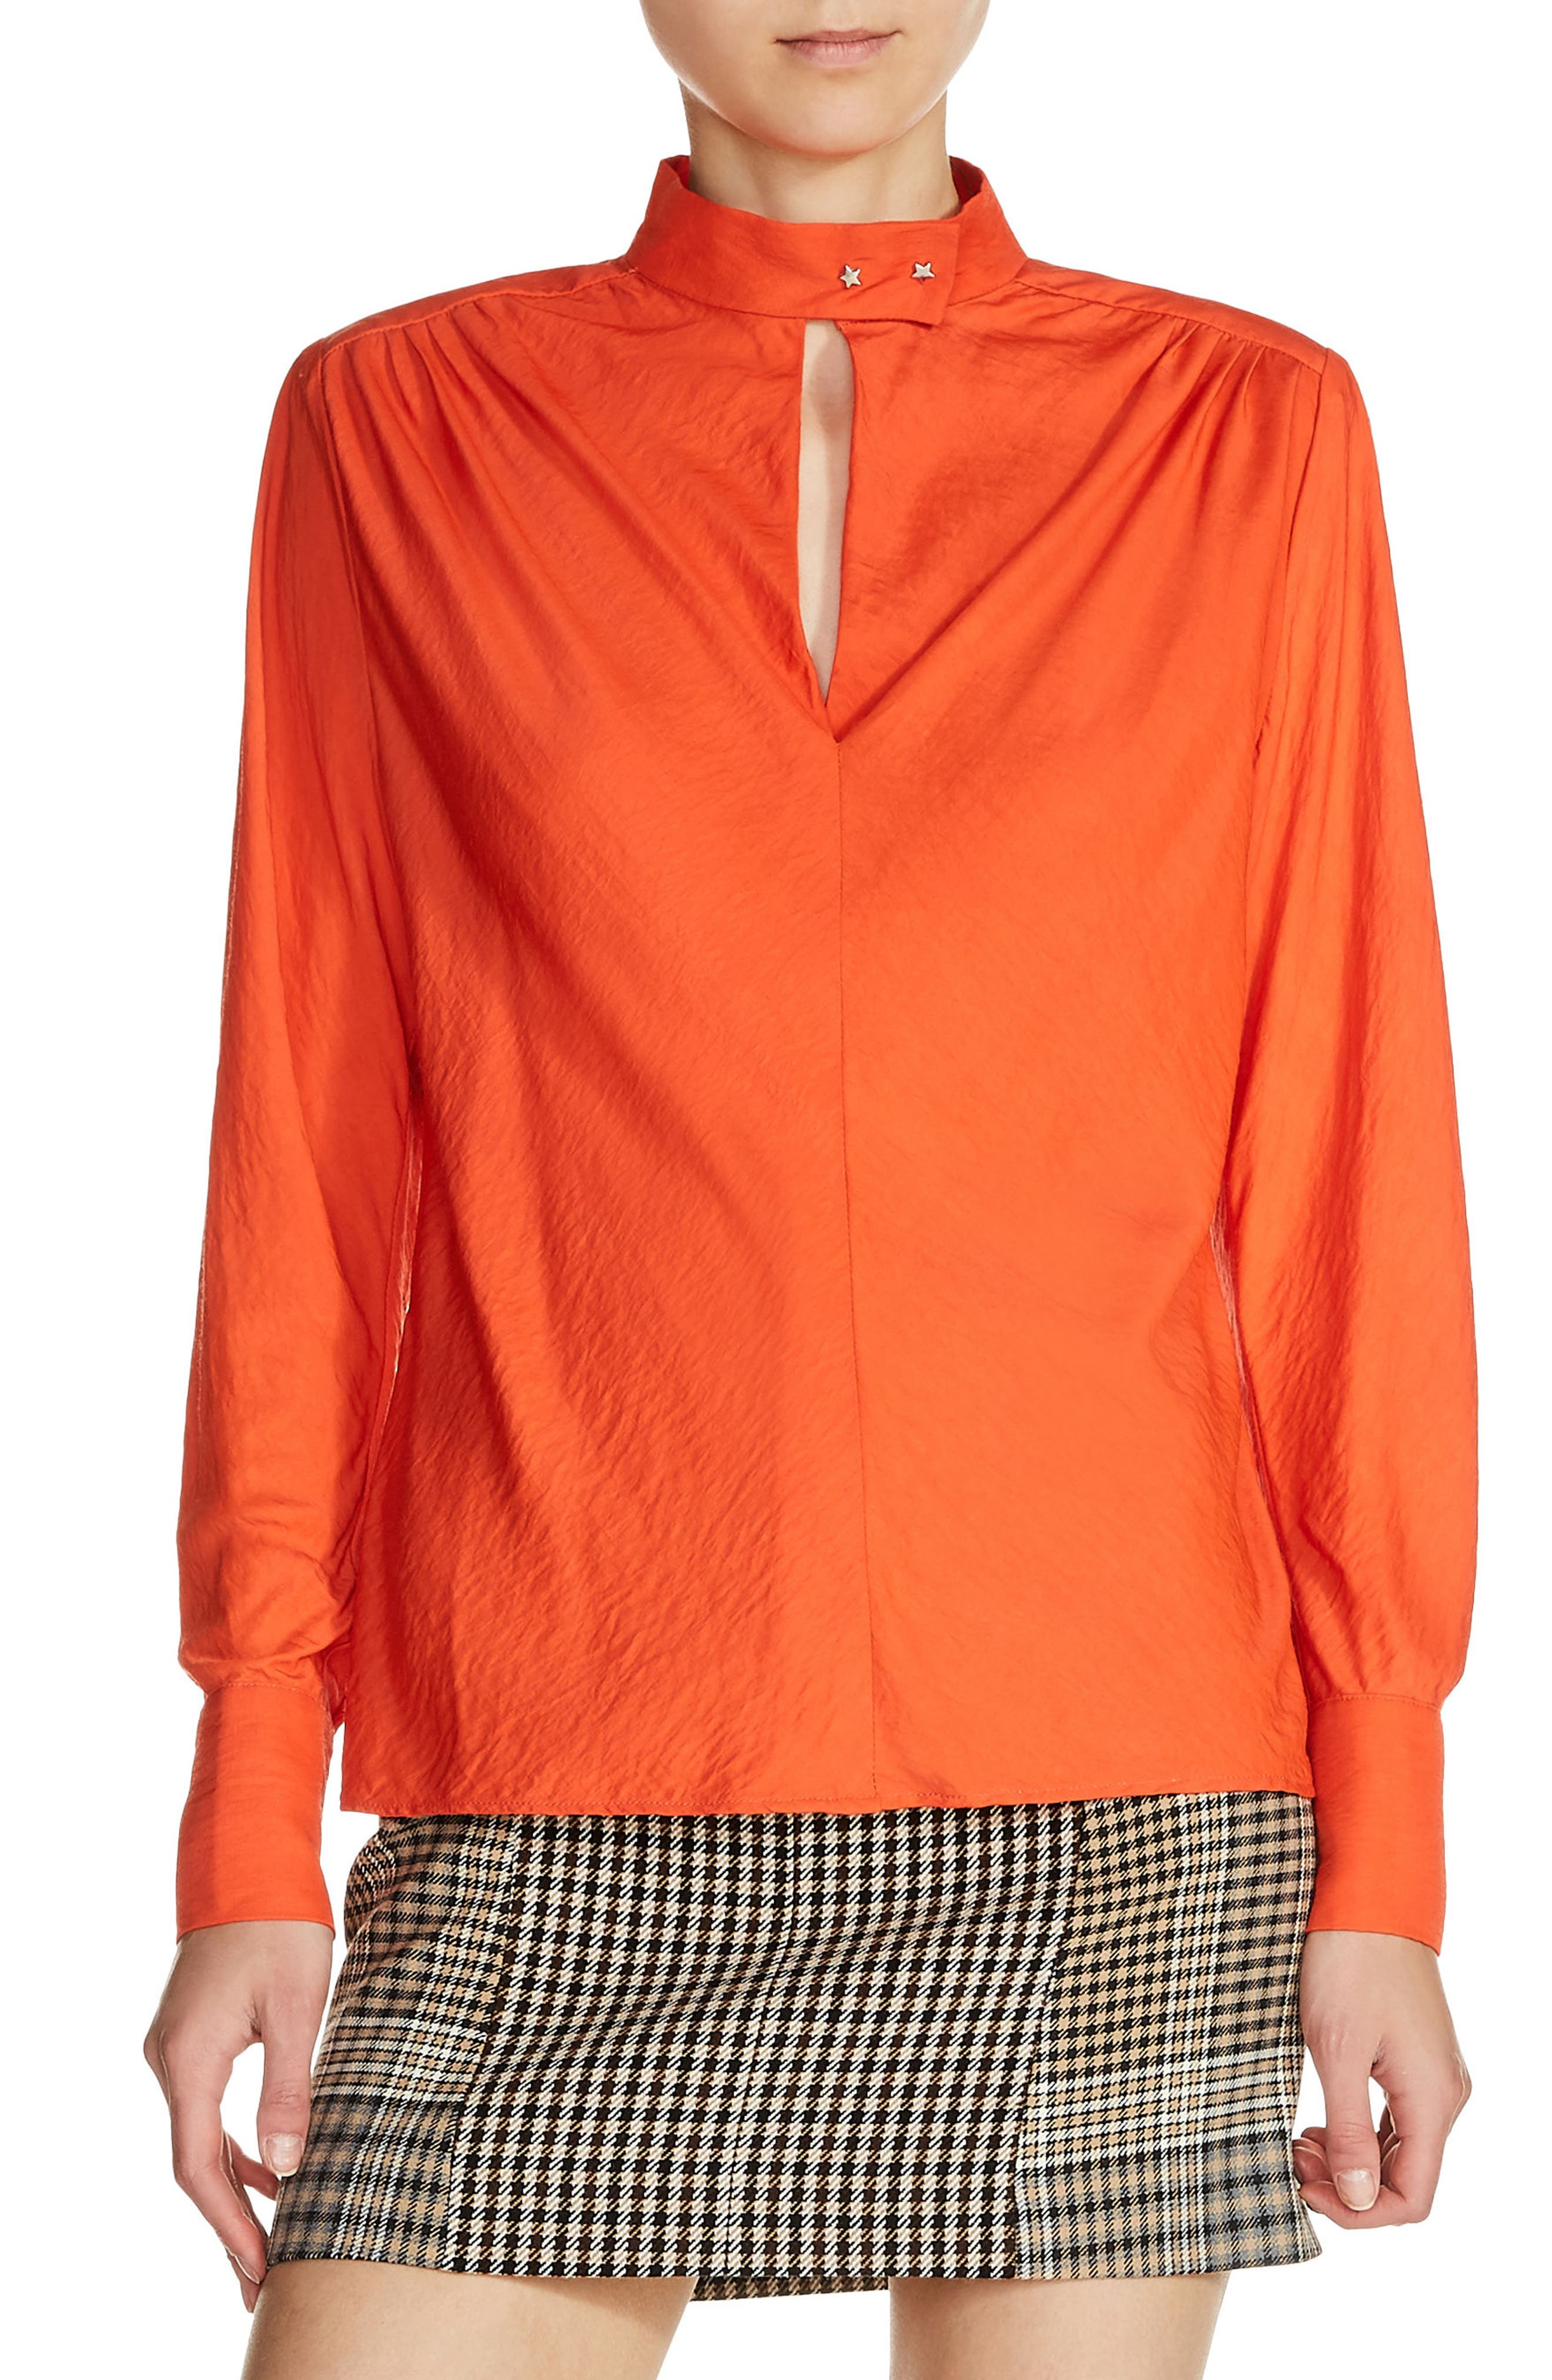 Star Snap Stand Collar Blouse,                         Main,                         color, Orange